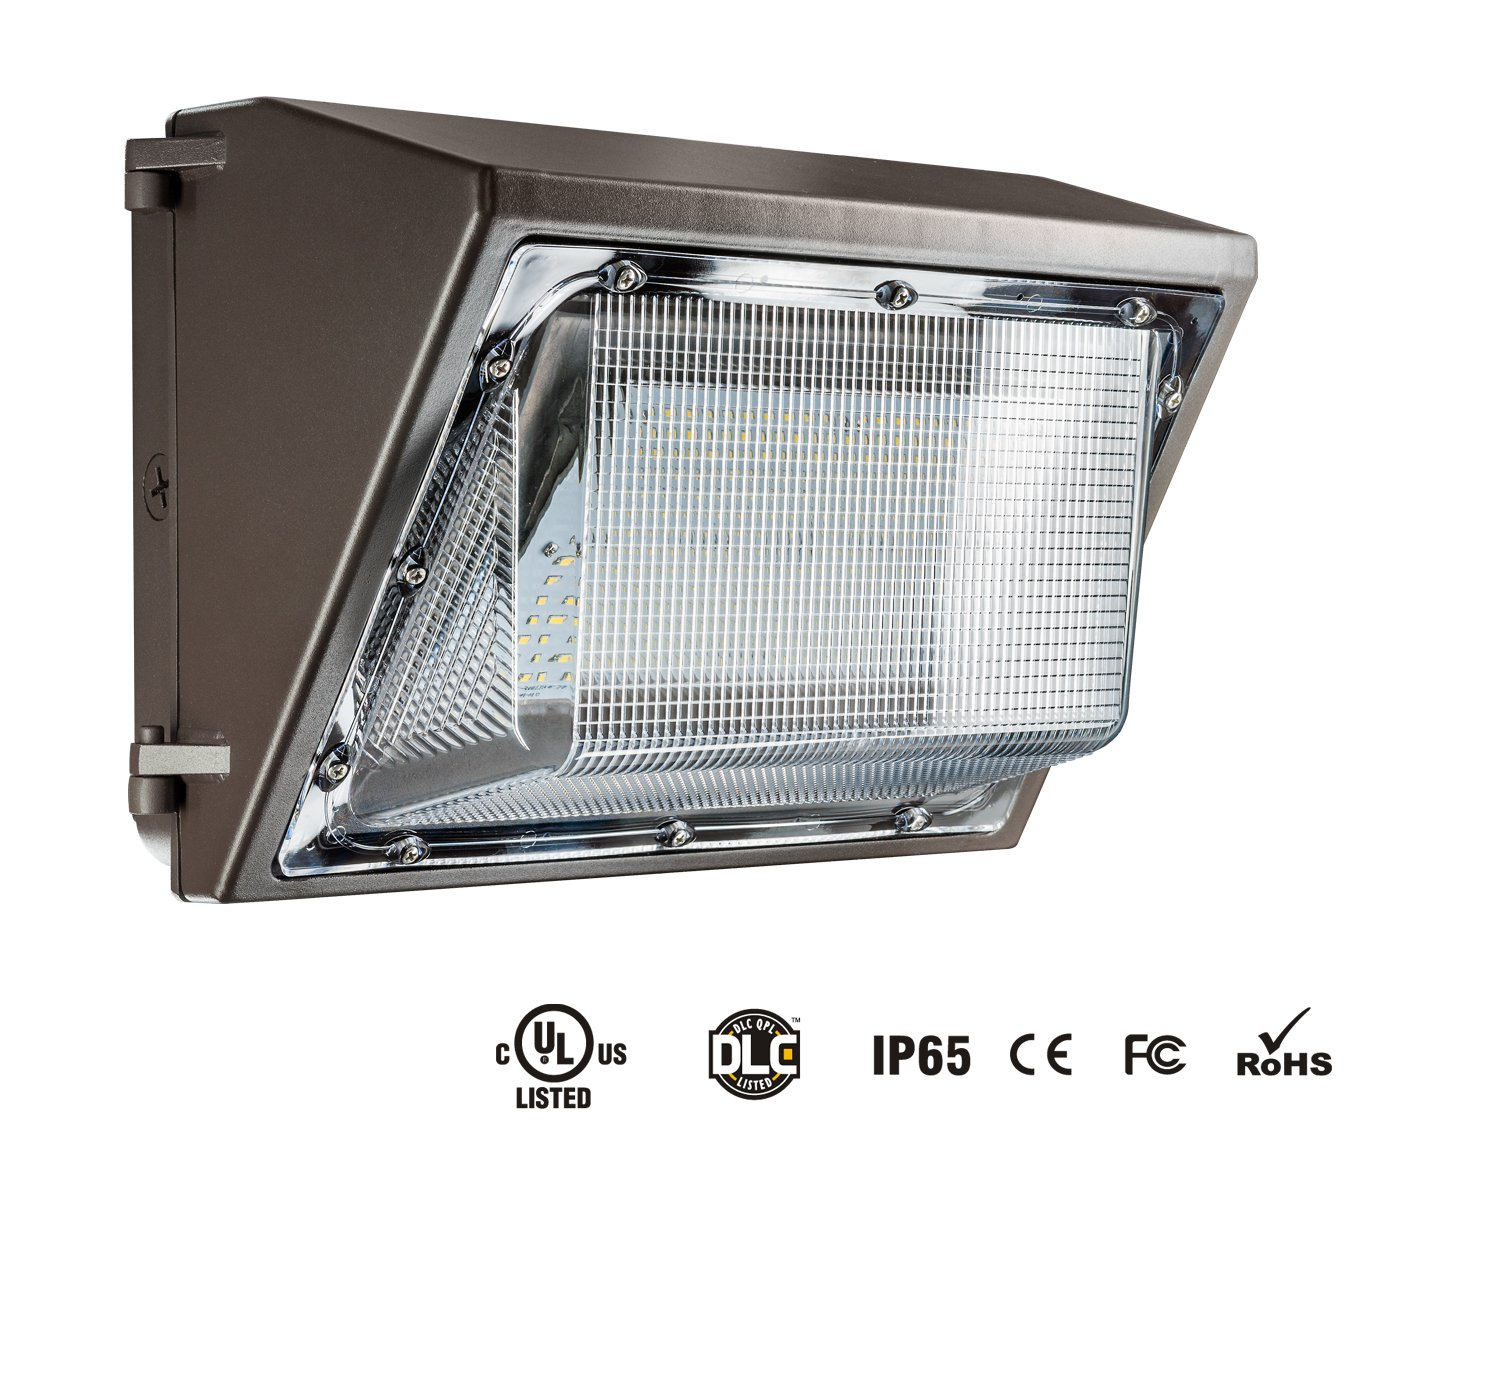 100W LED Wall Pack Fixture, 5700K Bright White Replaces 400W Metal Halide HPS/HID Weather Proof Outdoor Lighting, 100-277V AC UL/cUL DLC